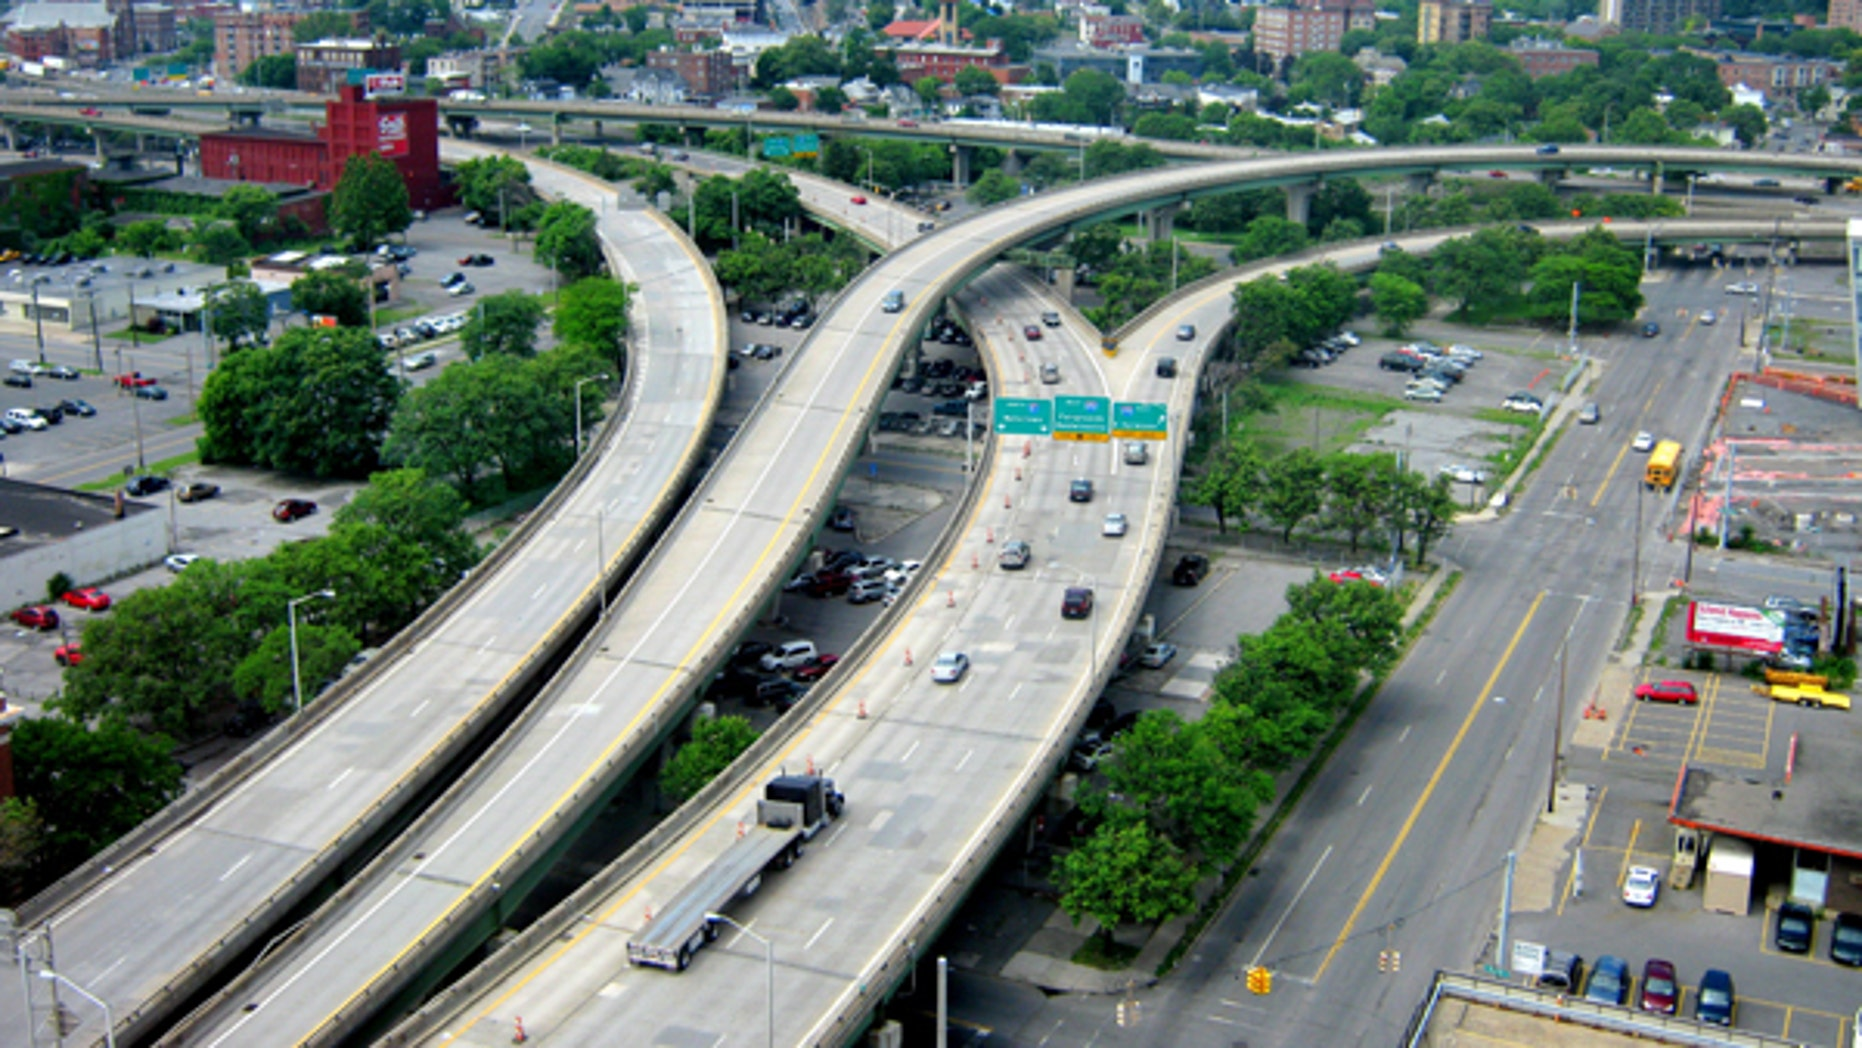 A new study points out ten of the worst highways and stretches of interstate in the country, including I-81 in Syracuse, New York.